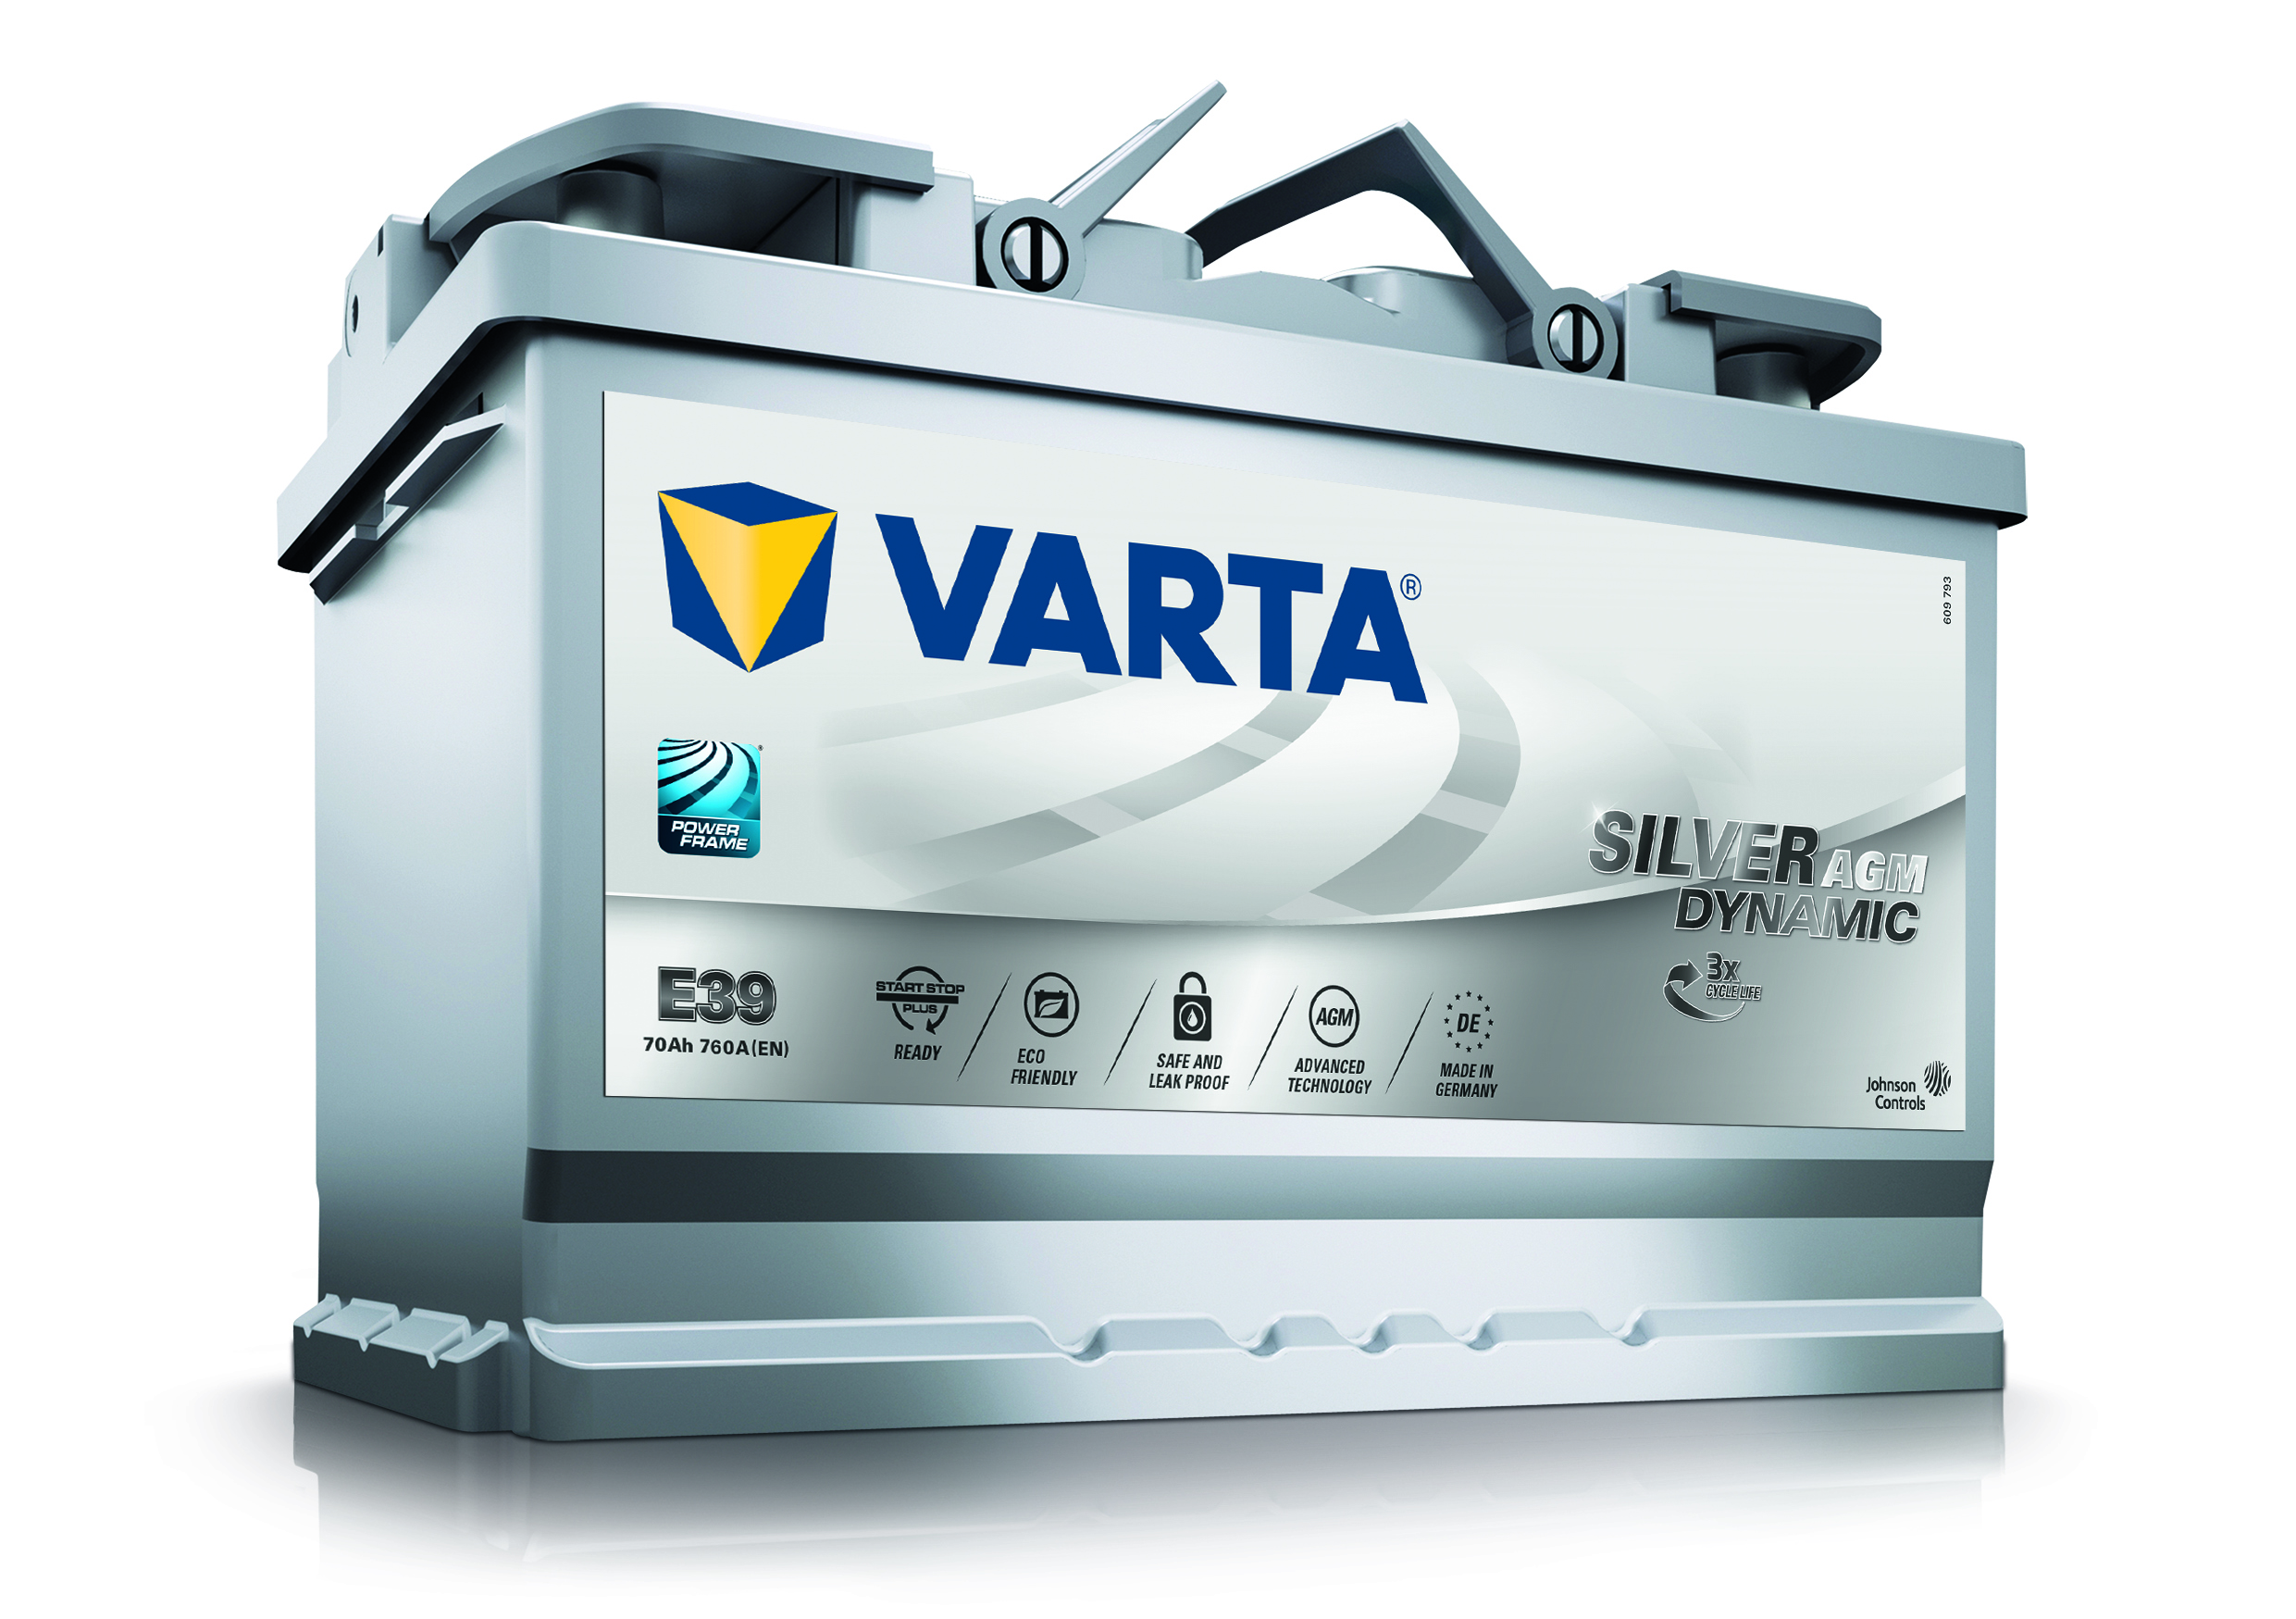 Johnson Controls launches new VARTA® automotive product